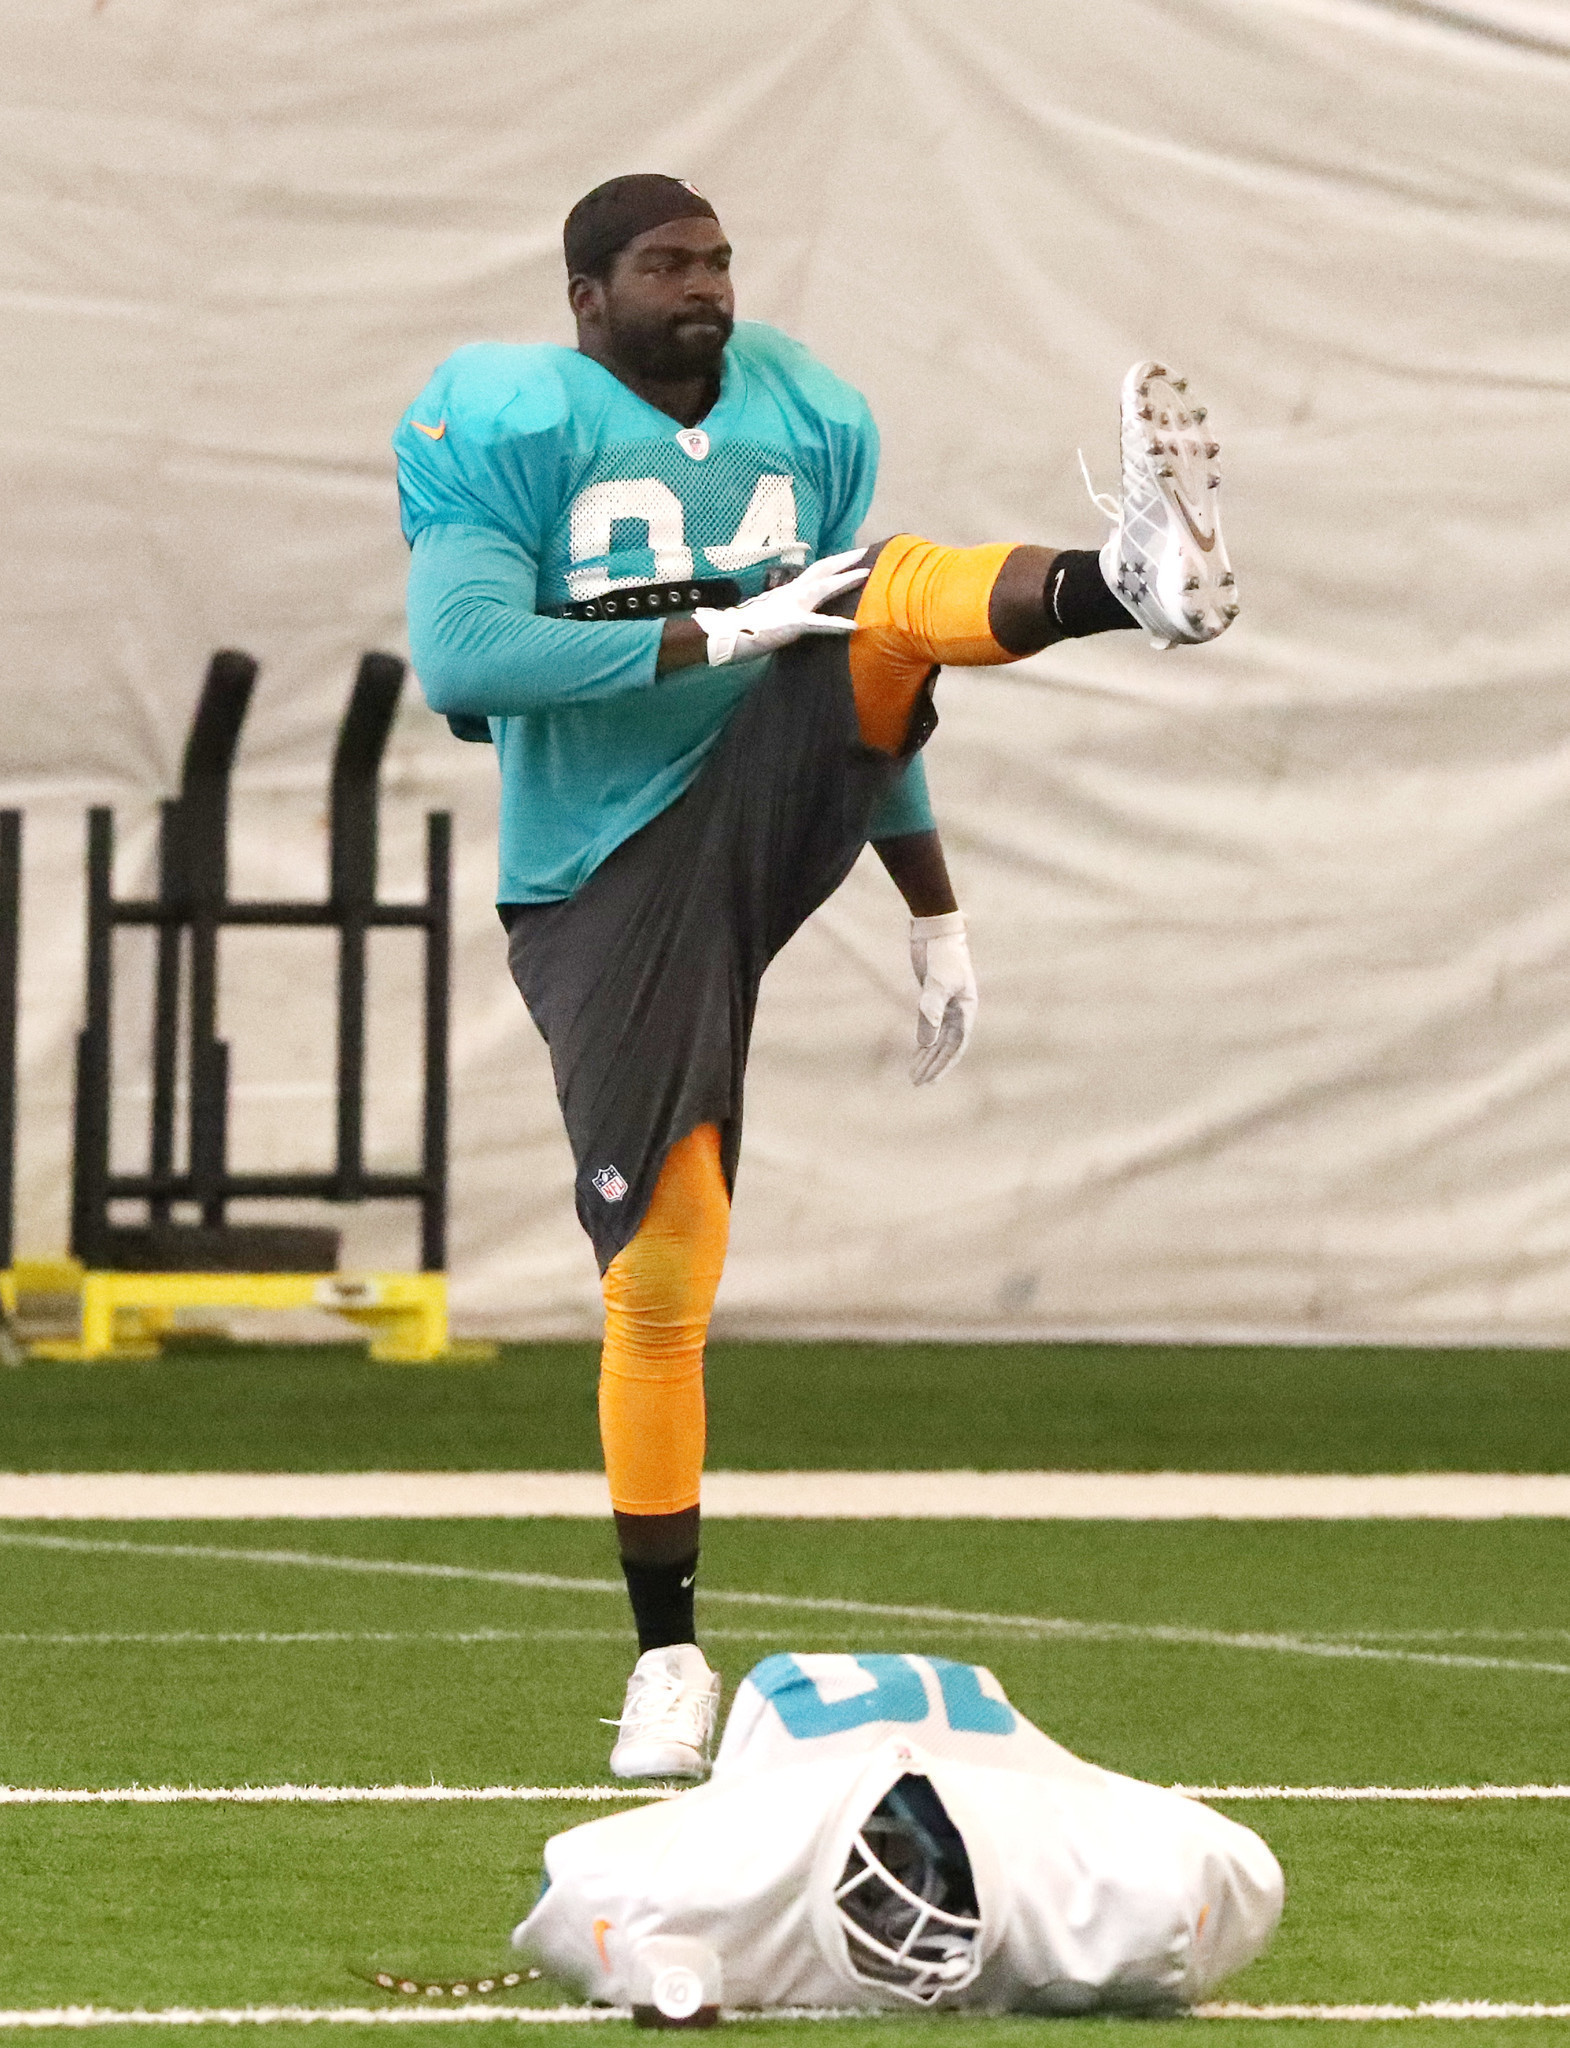 Fl-sp-dolphins-notes-20171019